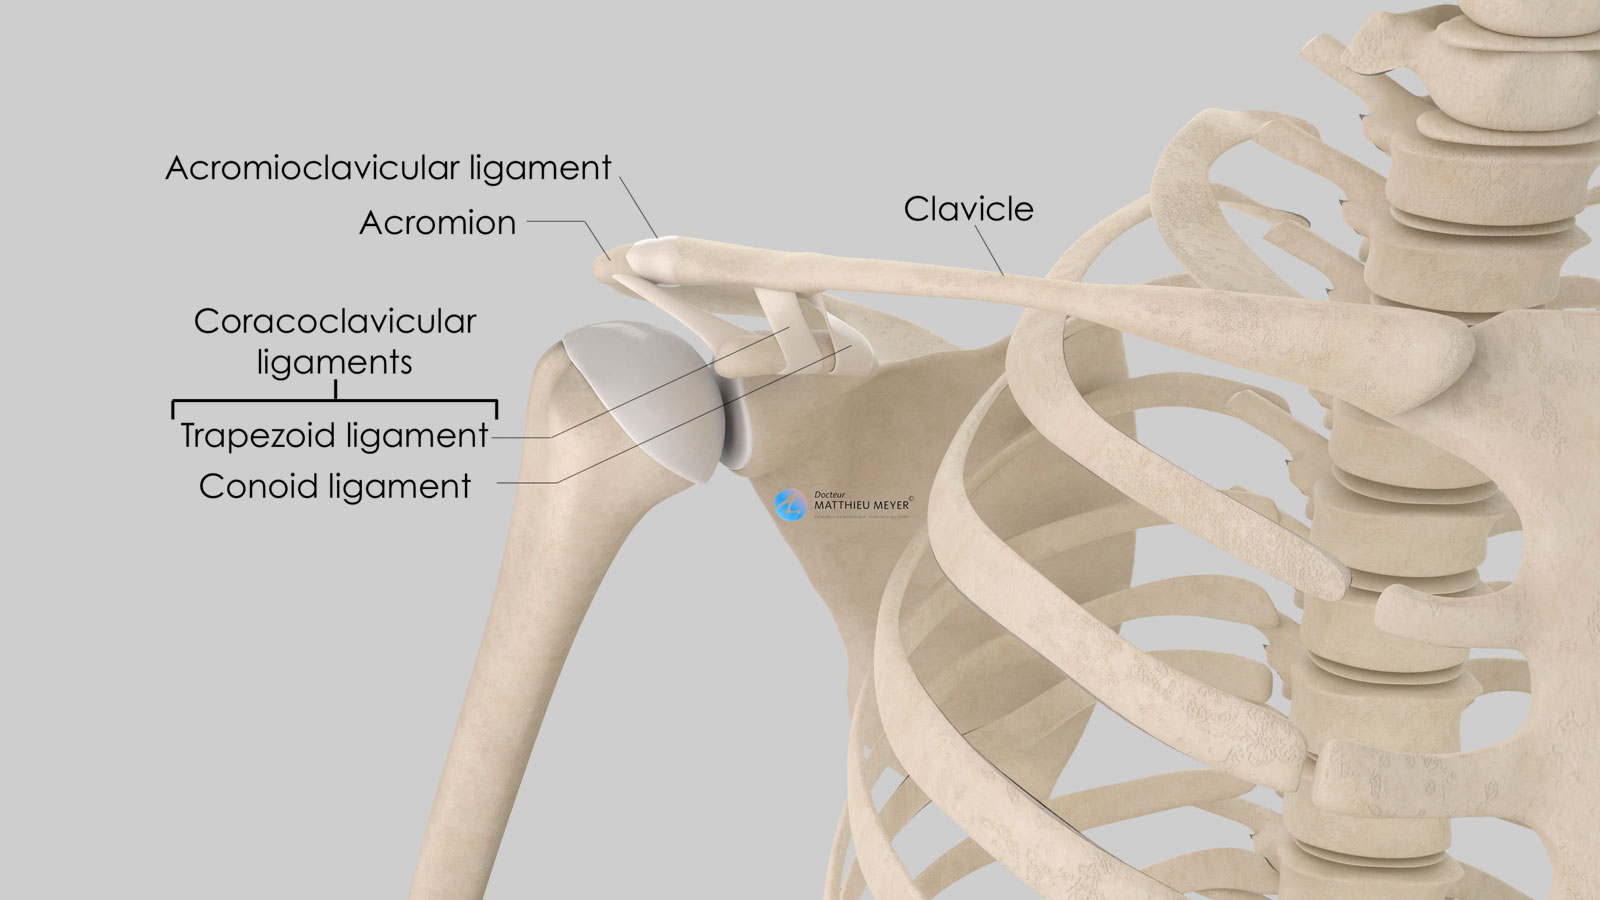 Anatomy of the acromioclavicular joint